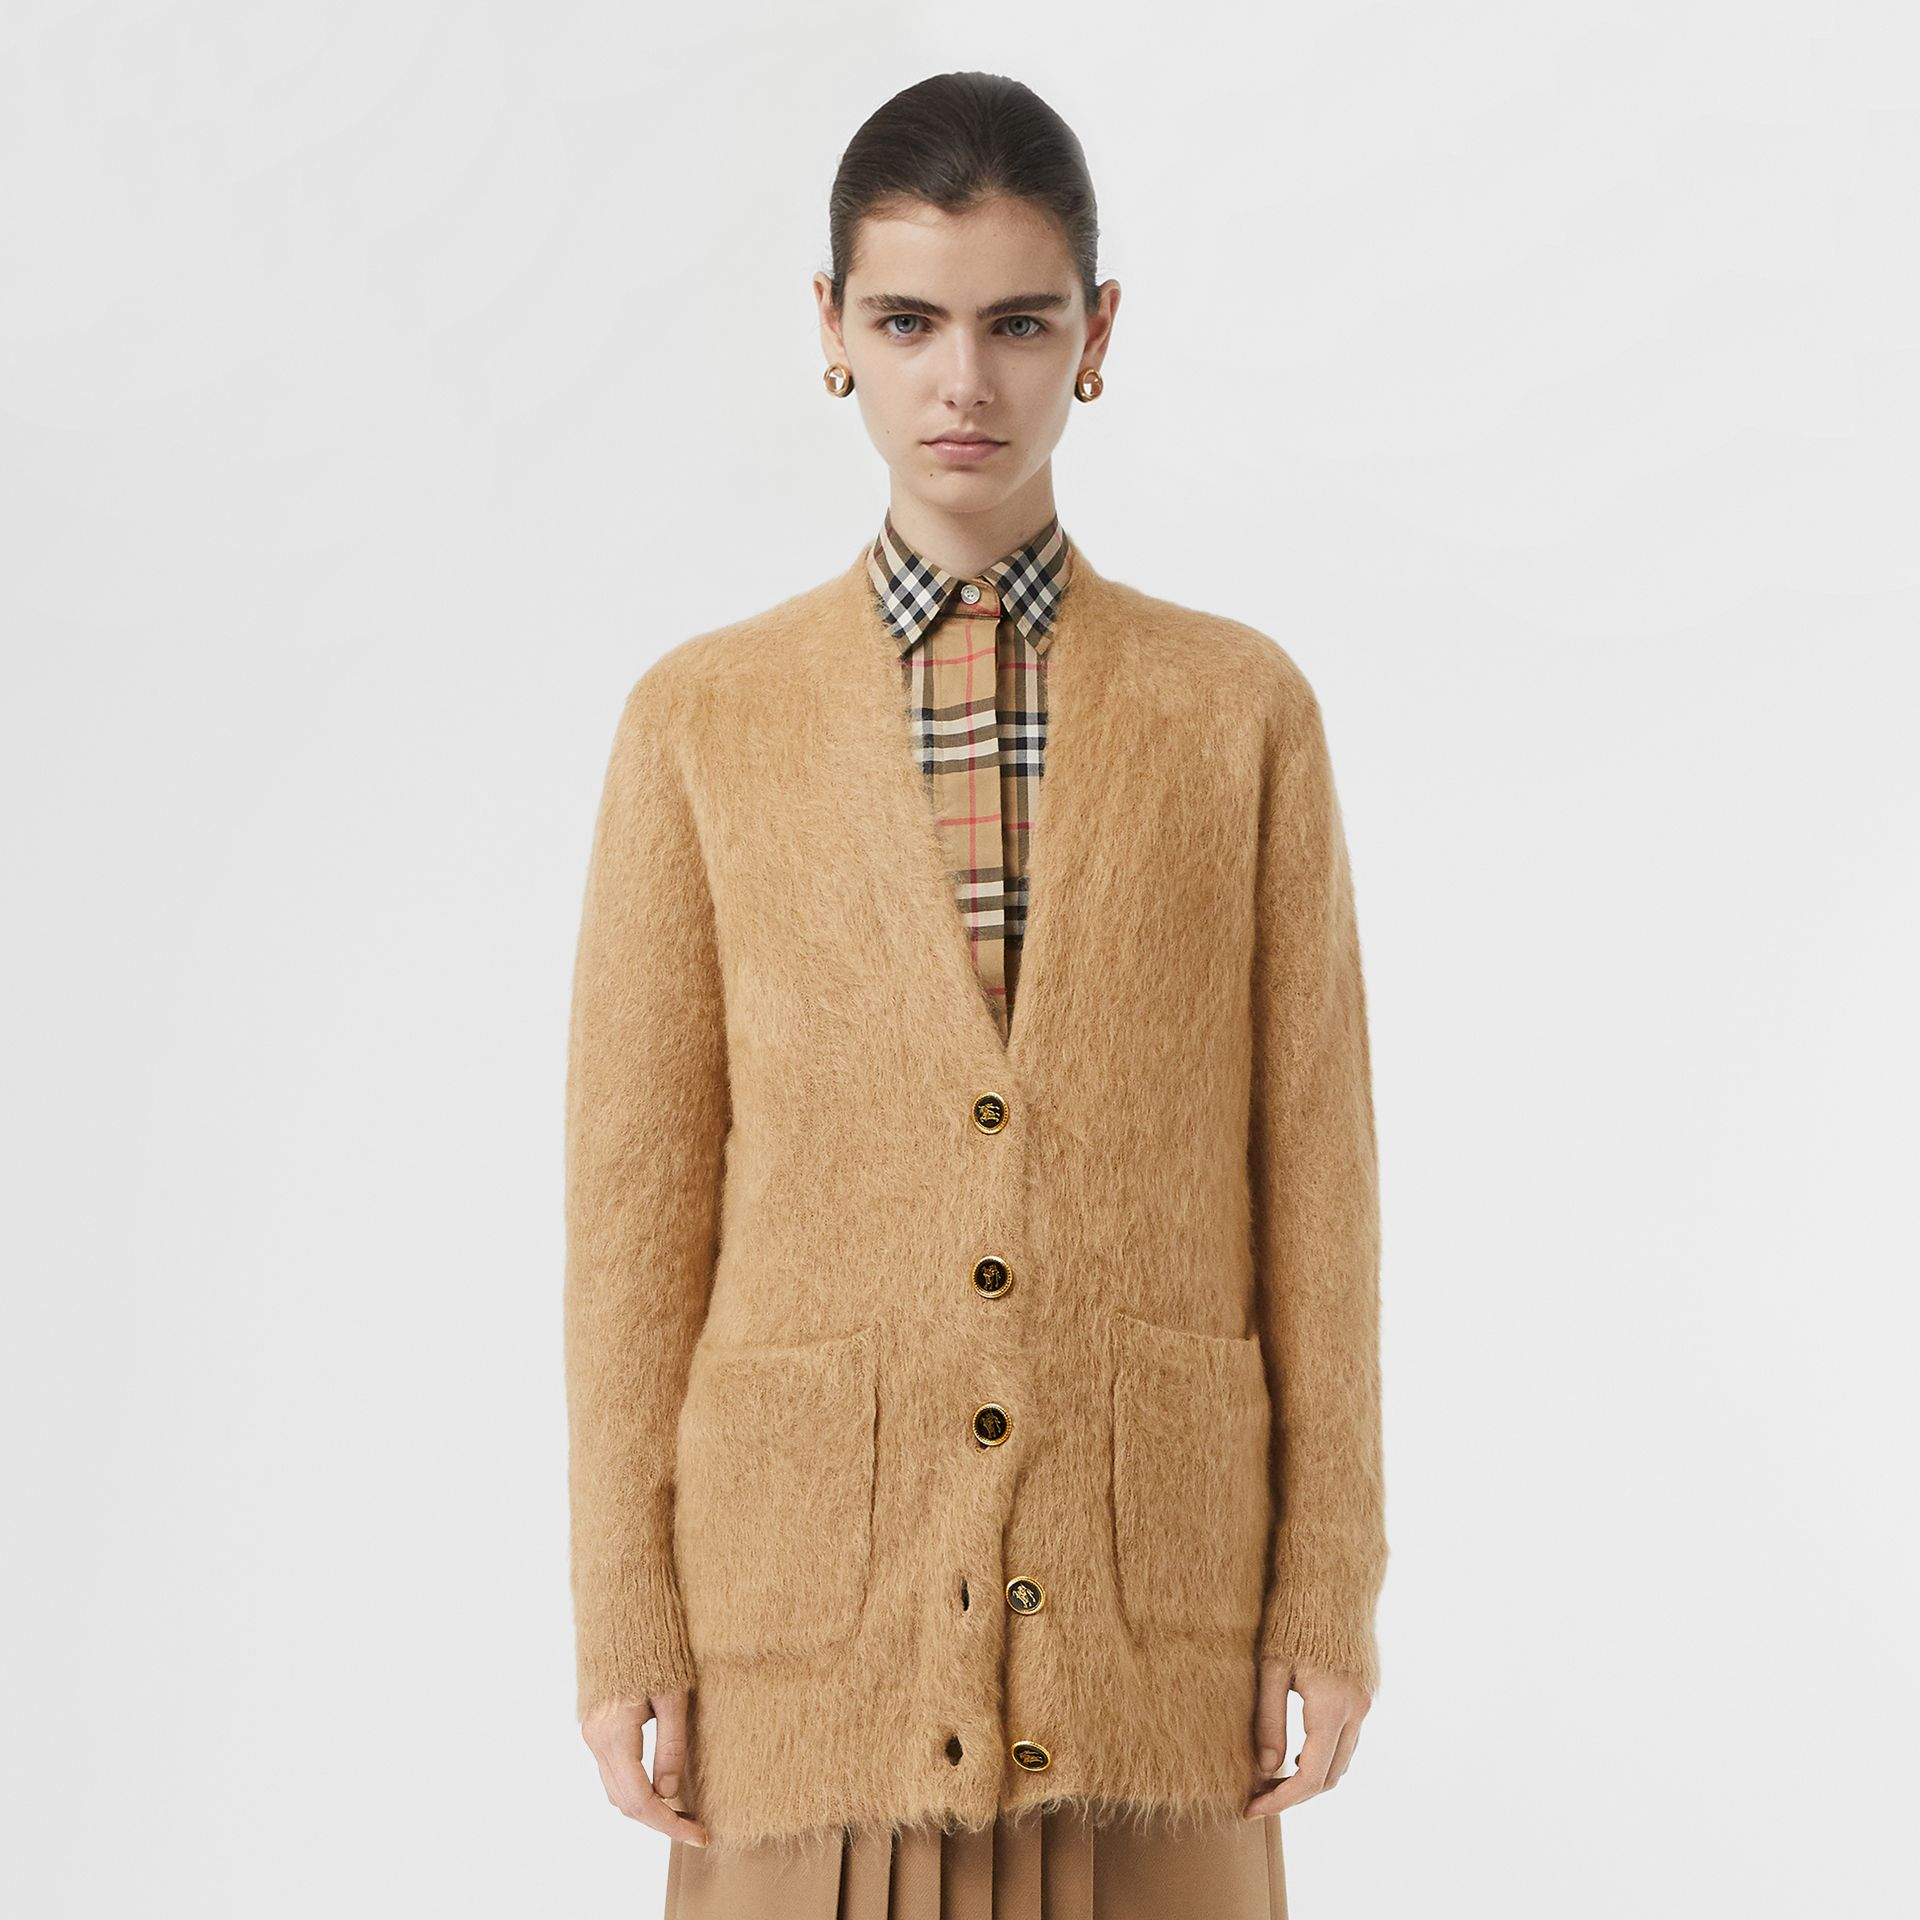 Silk Mohair Wool Blend V-neck Cardigan in Light Camel - Women | Burberry United States - gallery image 7